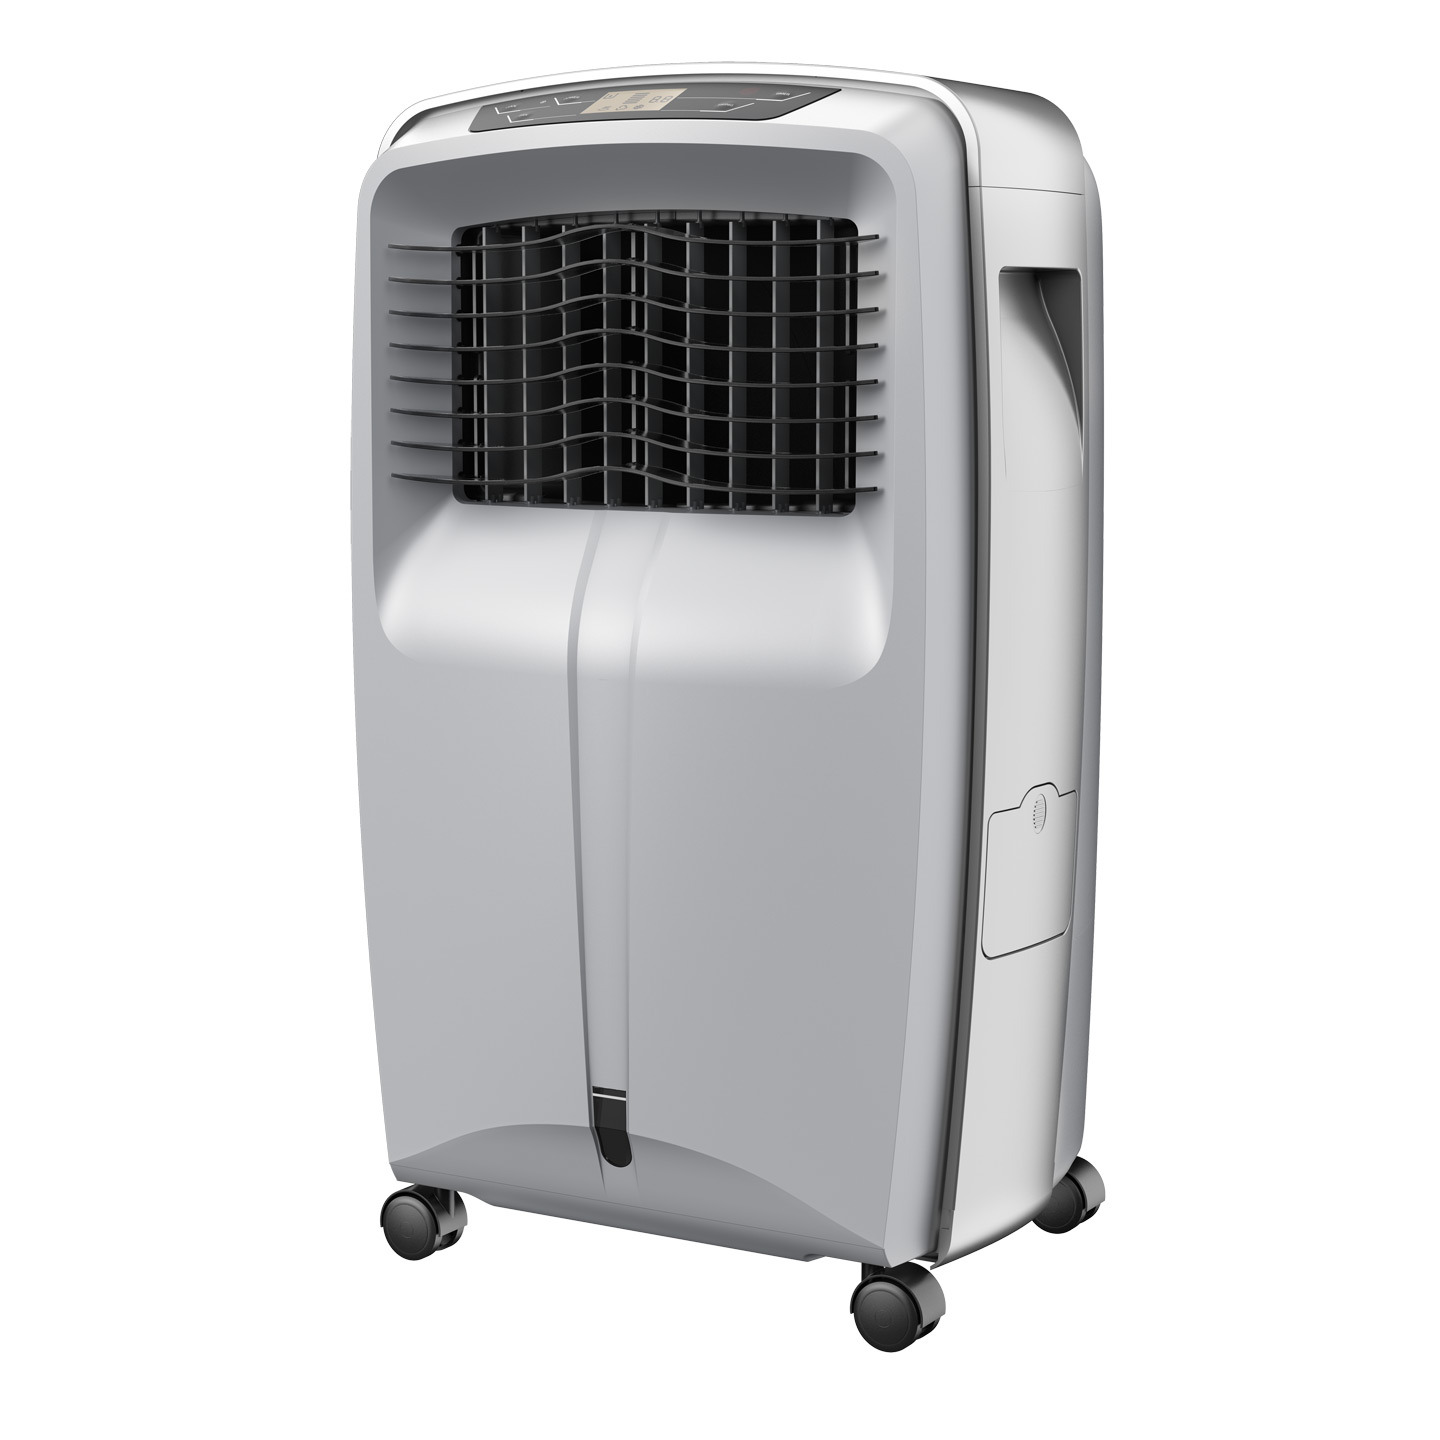 Delightful Portable Evaporative Cooler   700 CFM